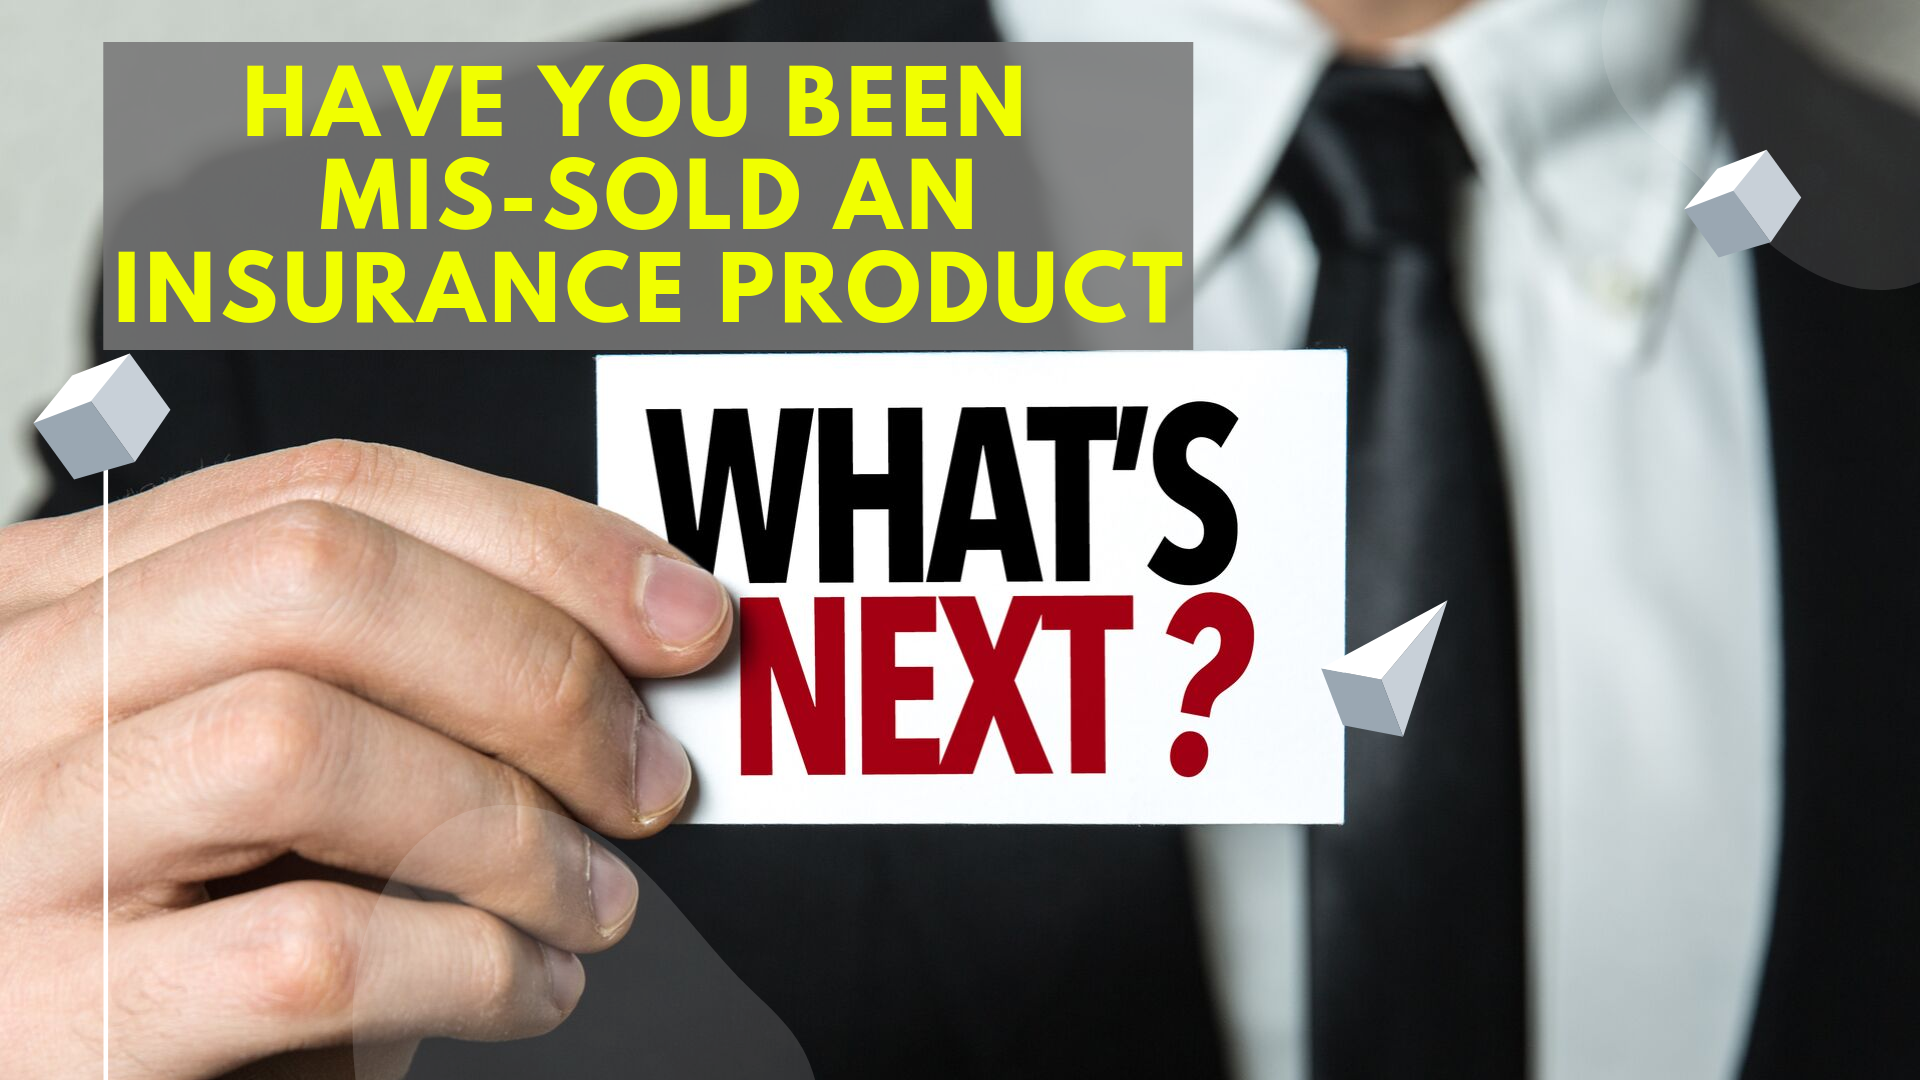 What to do if you have been mis-sold an Insurance Product